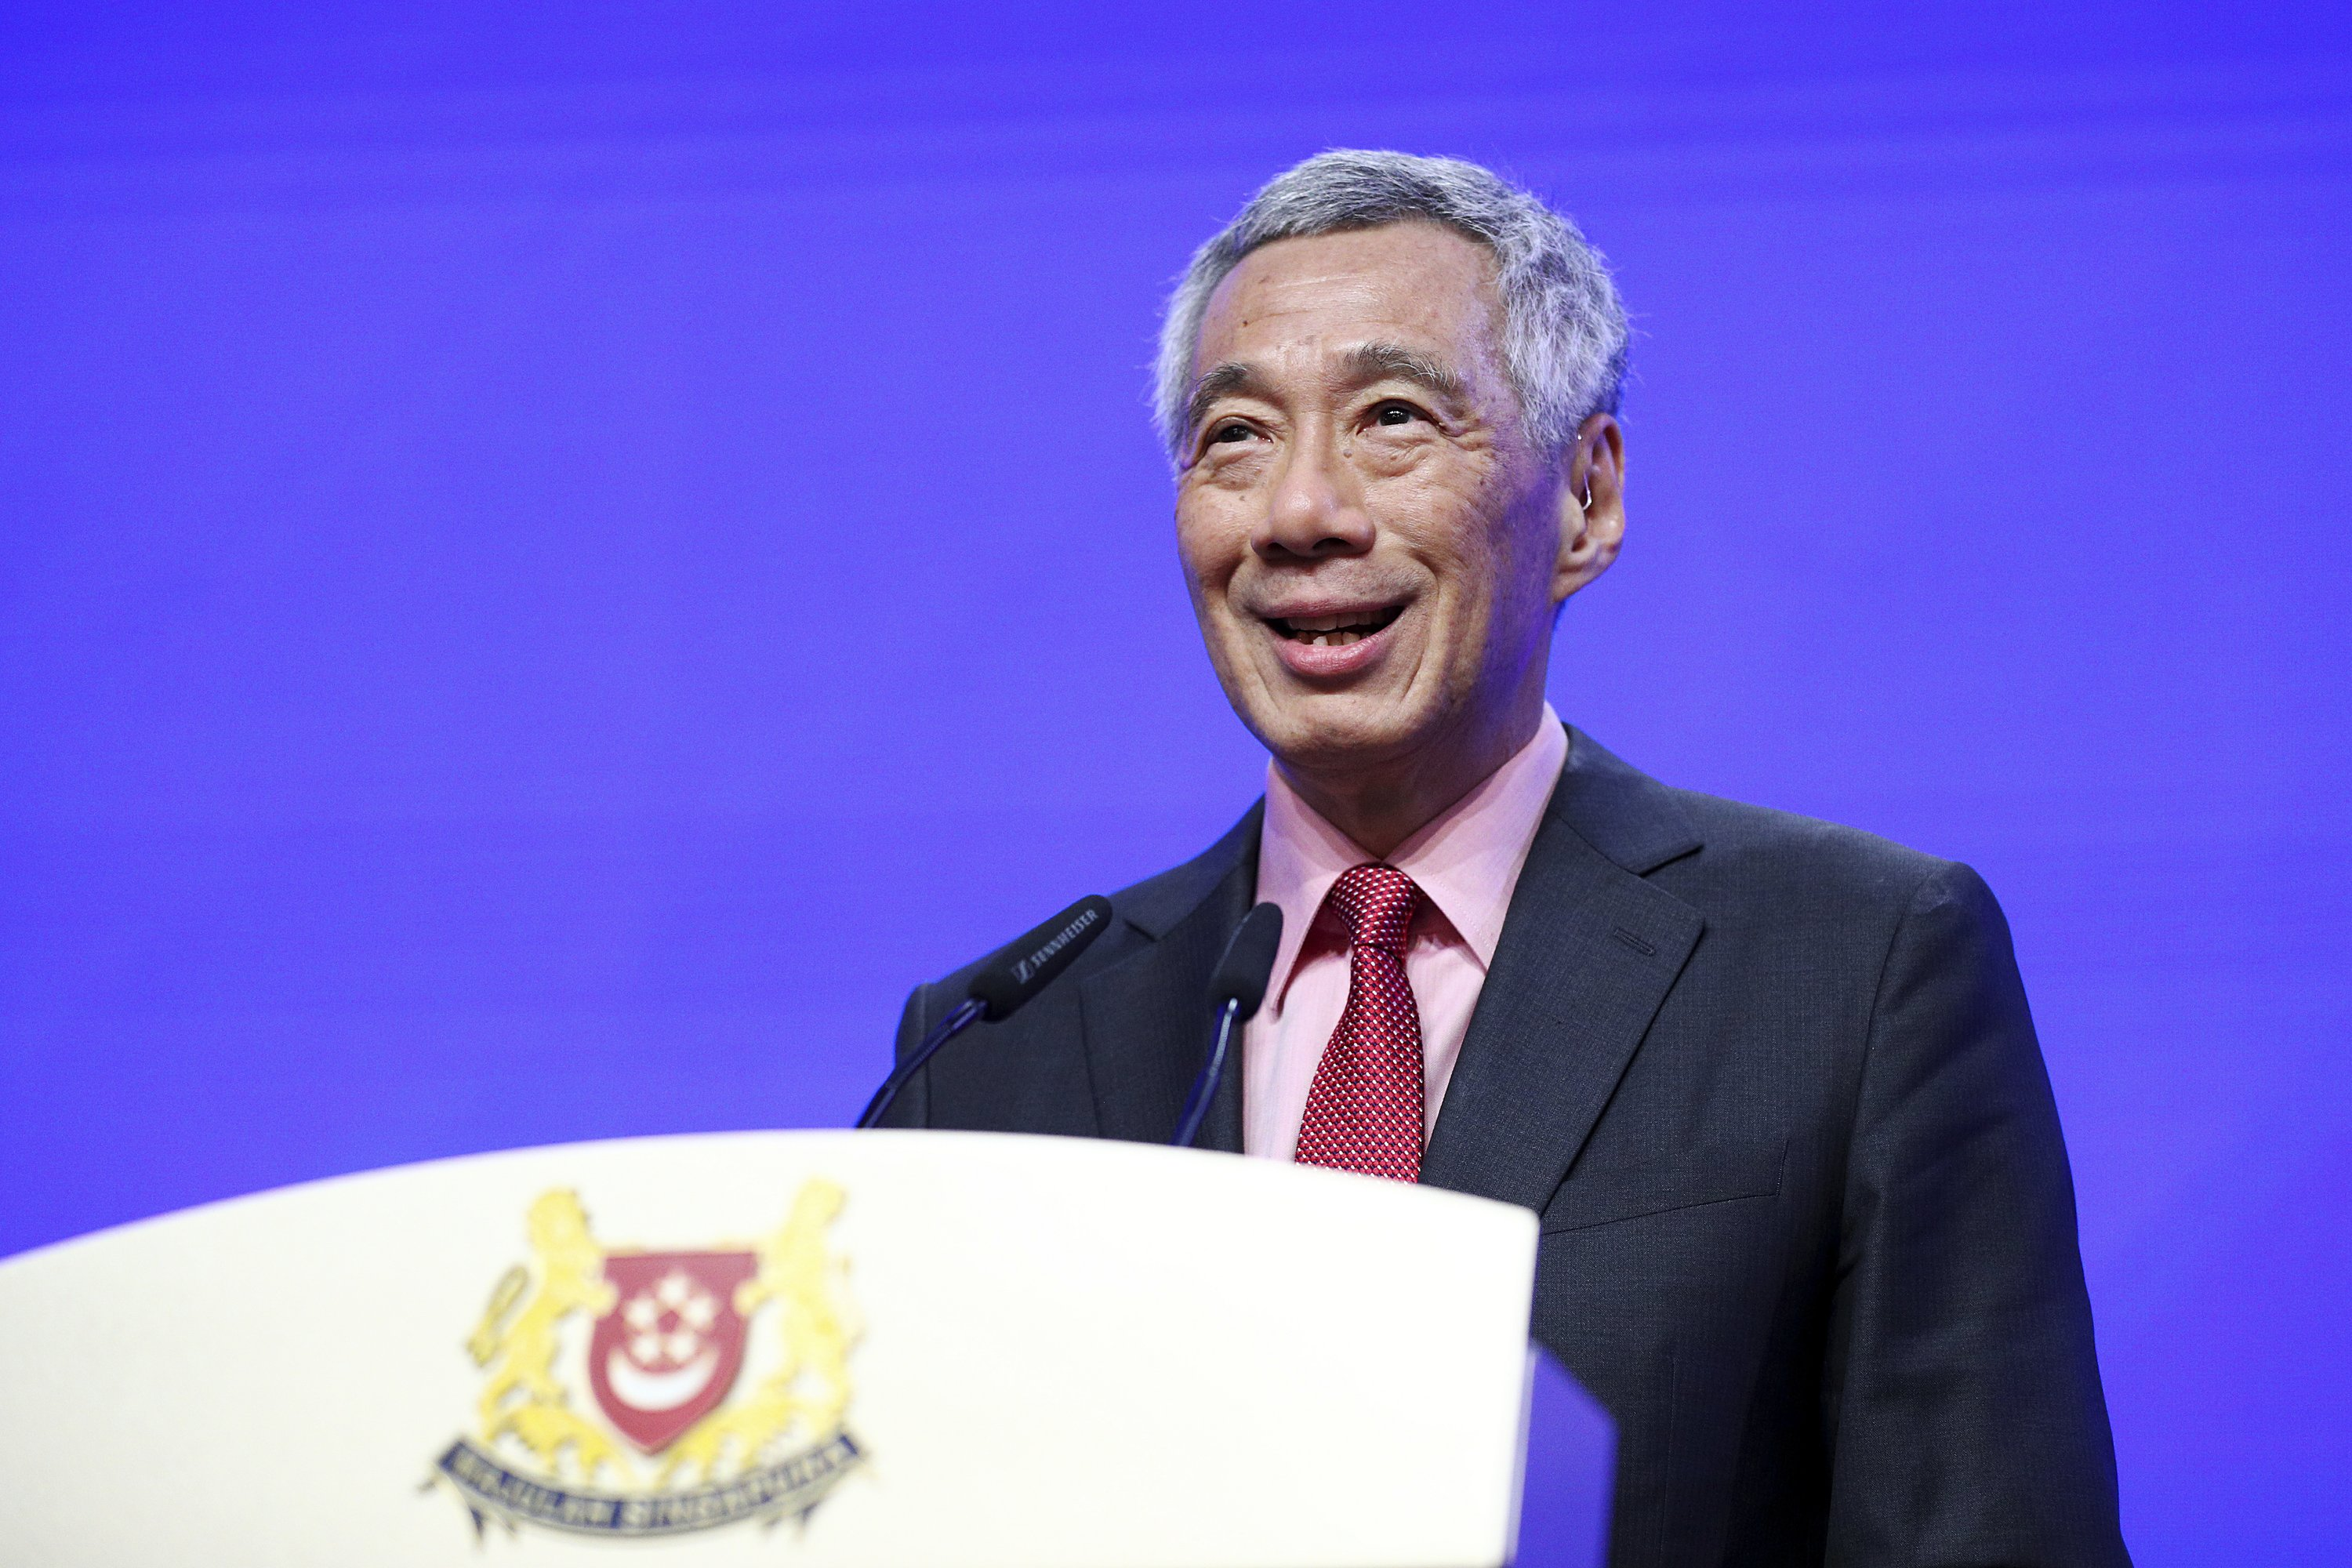 Singapore says global rules could change with China's rise